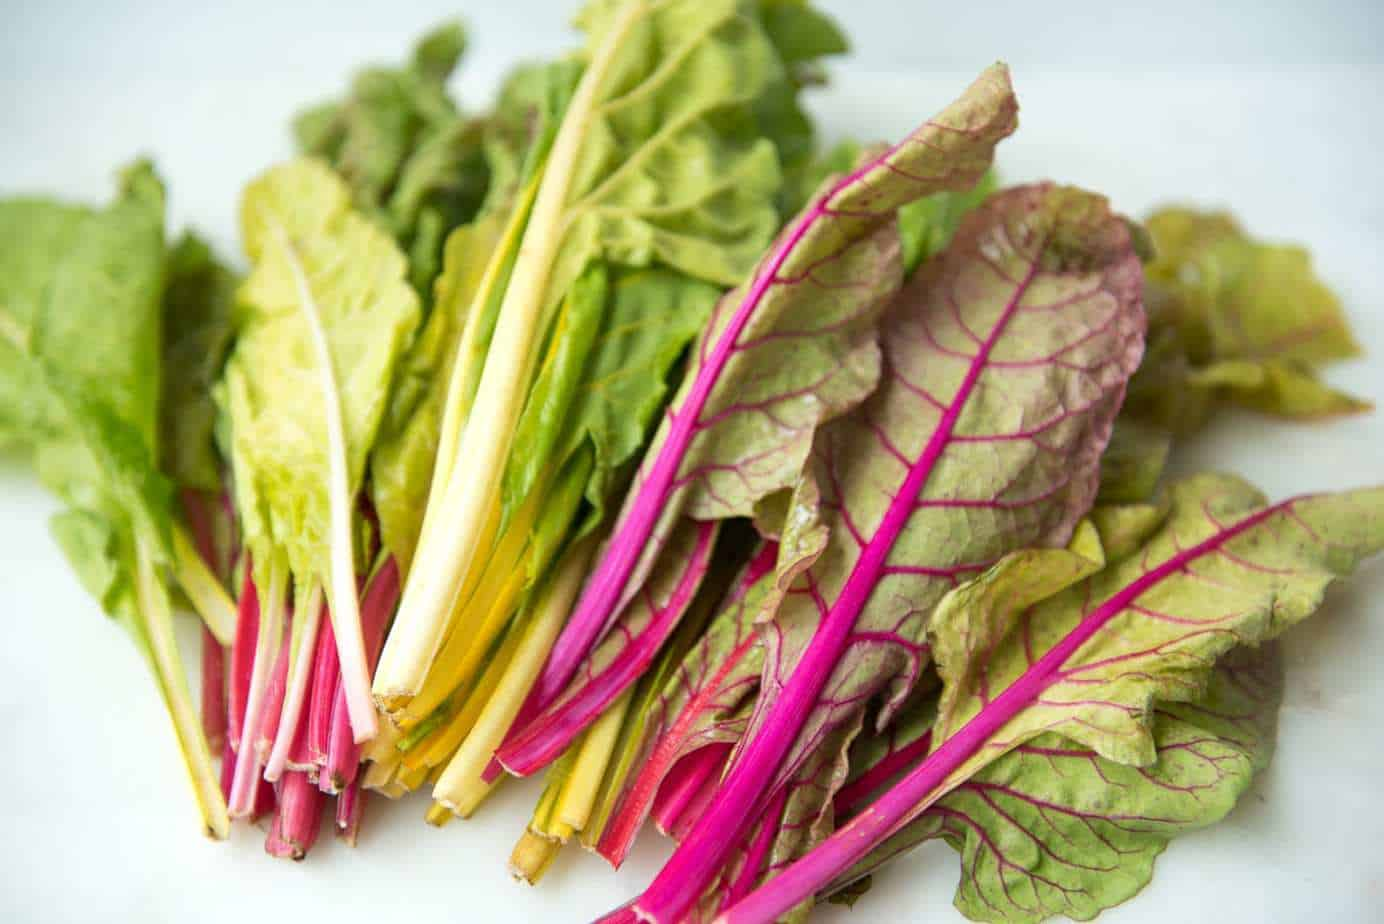 Braised Rainbow Chard - a Paleo, gluten-free, vegetarian, and vegan side dish recipe